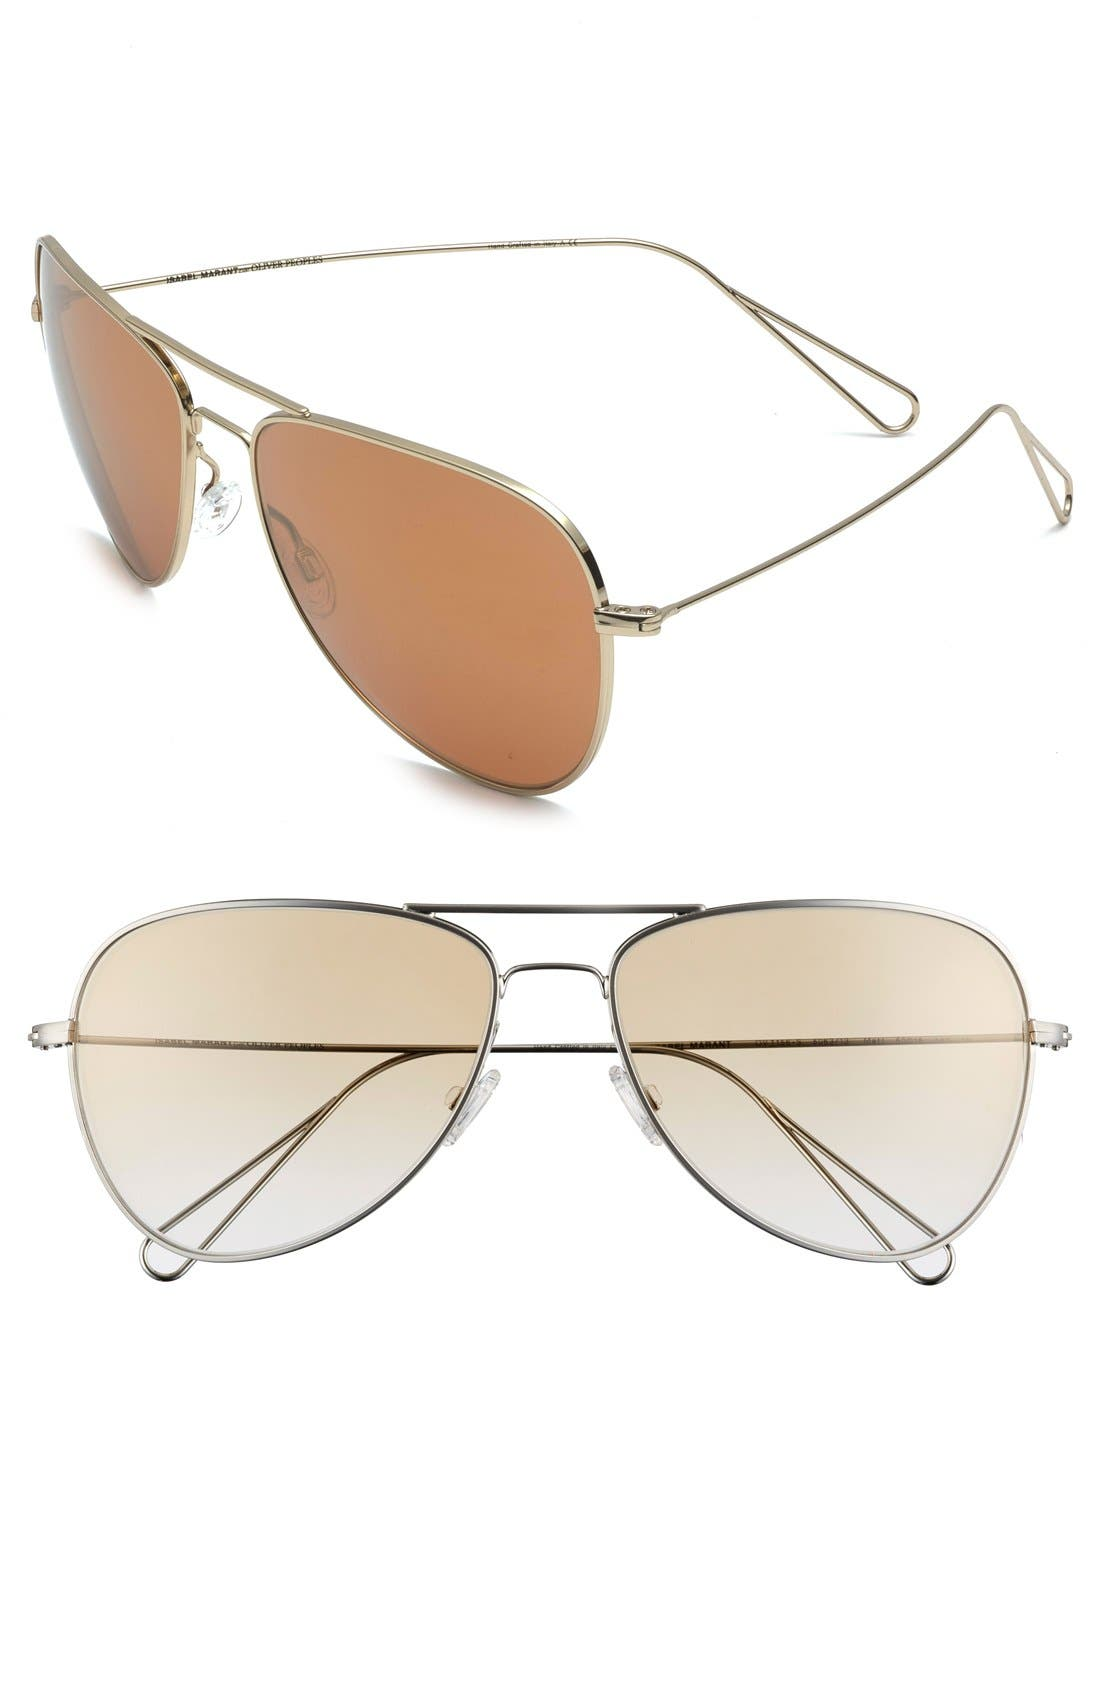 Main Image - Isabel Marant par Oliver Peoples 'Matt' 60mm Aviator Sunglasses